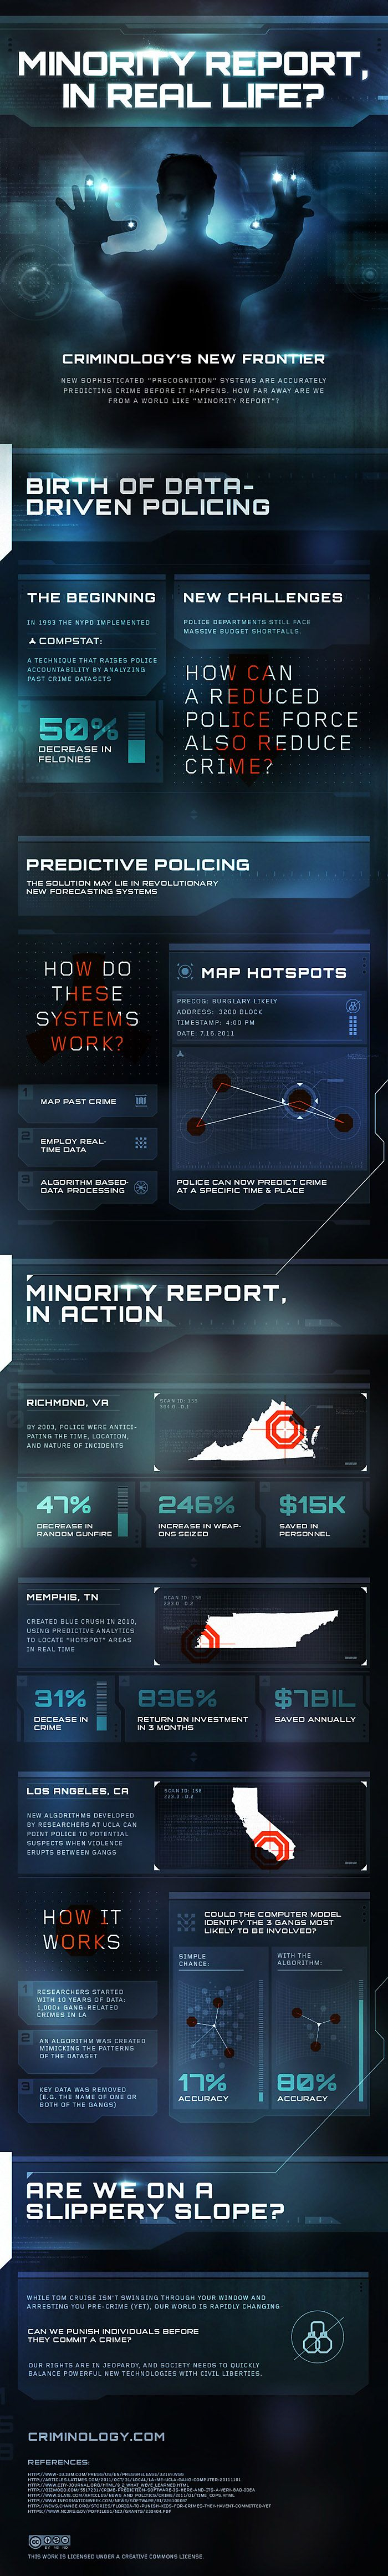 images about minority report technology minority report policing already love the technology behind these ideas but not the